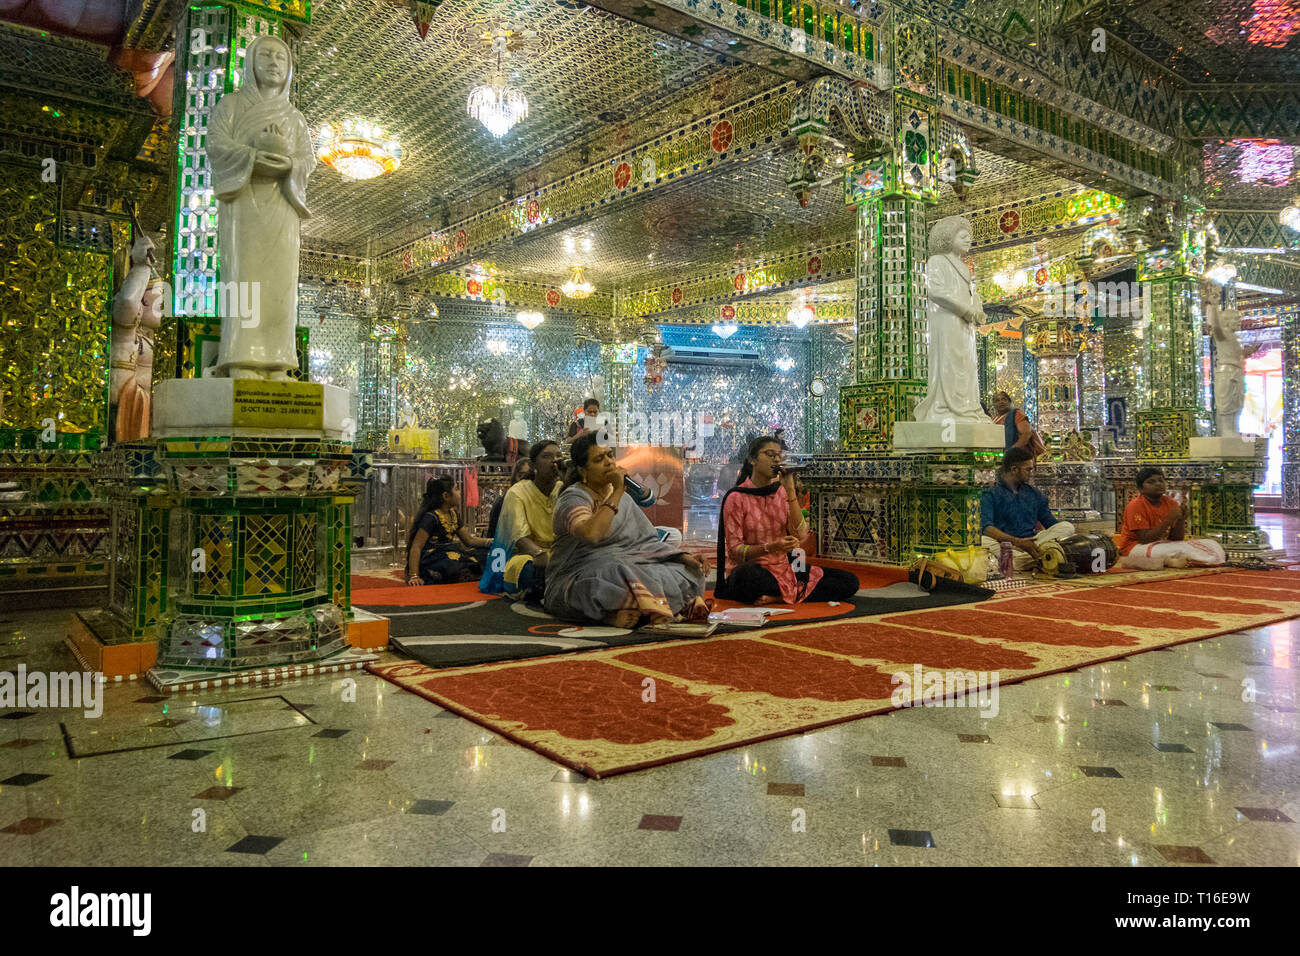 The unique Arulmigu Sri Rajakaliamman Glass Temple in Johor Bahru, Malaysia. The interior is completely covered in glass tiles. Singing. - Stock Image